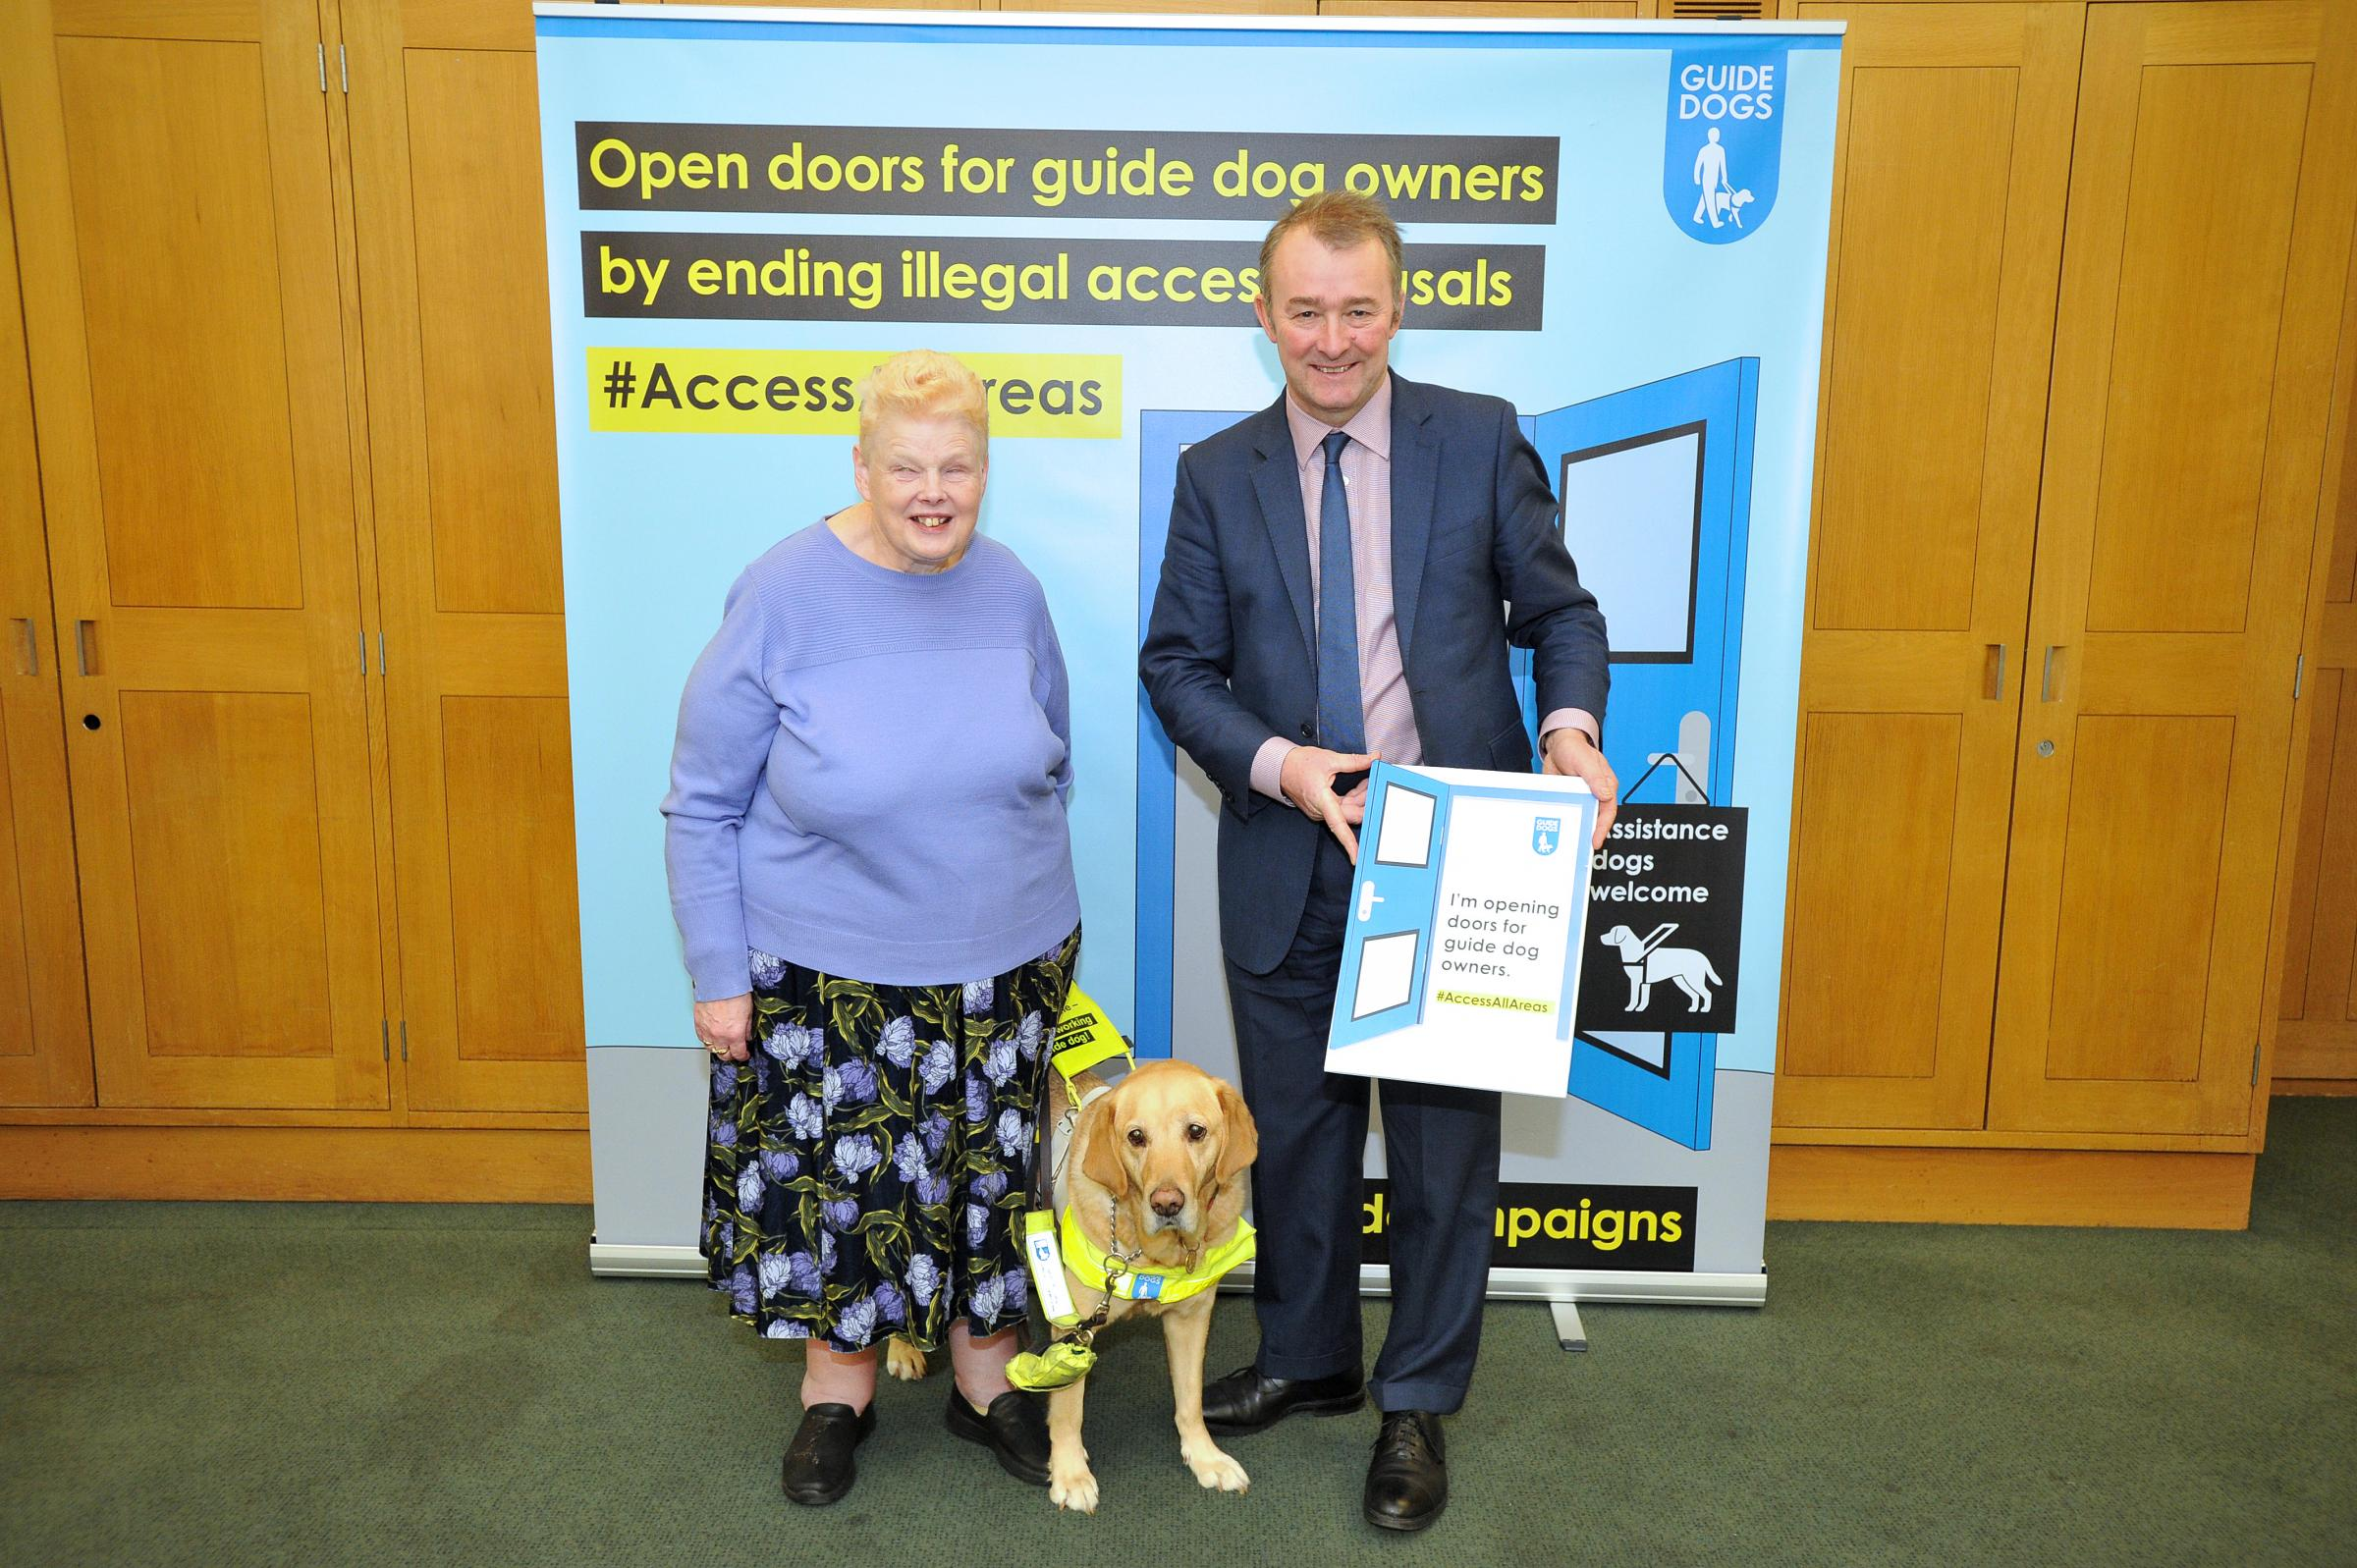 Simon Hart MP with June and guide dog Shannon helping to keep doors open for guide dogs.